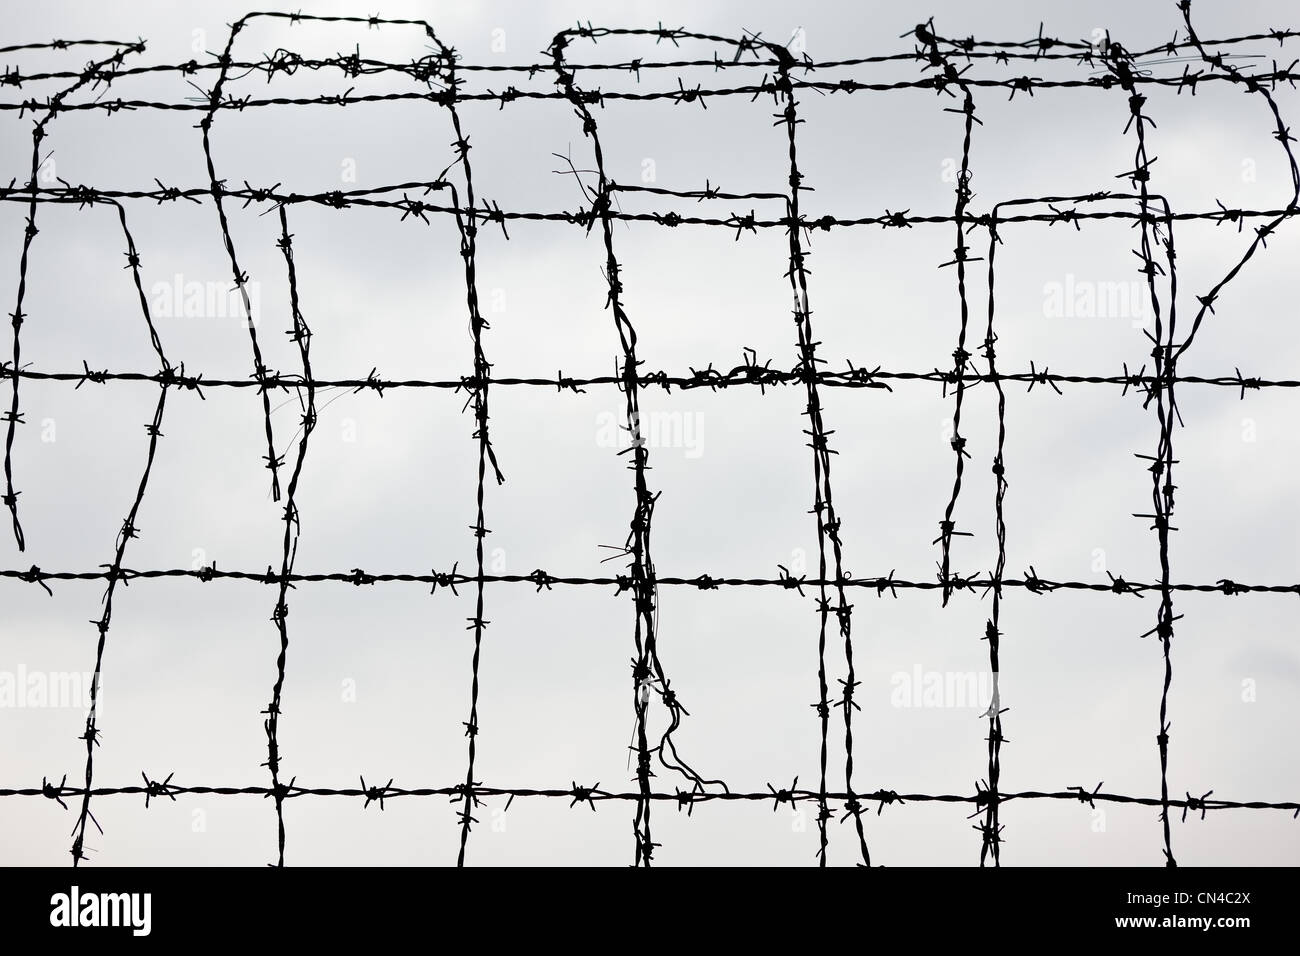 Security Barbed Wire Fence Stock Photos & Security Barbed Wire Fence ...